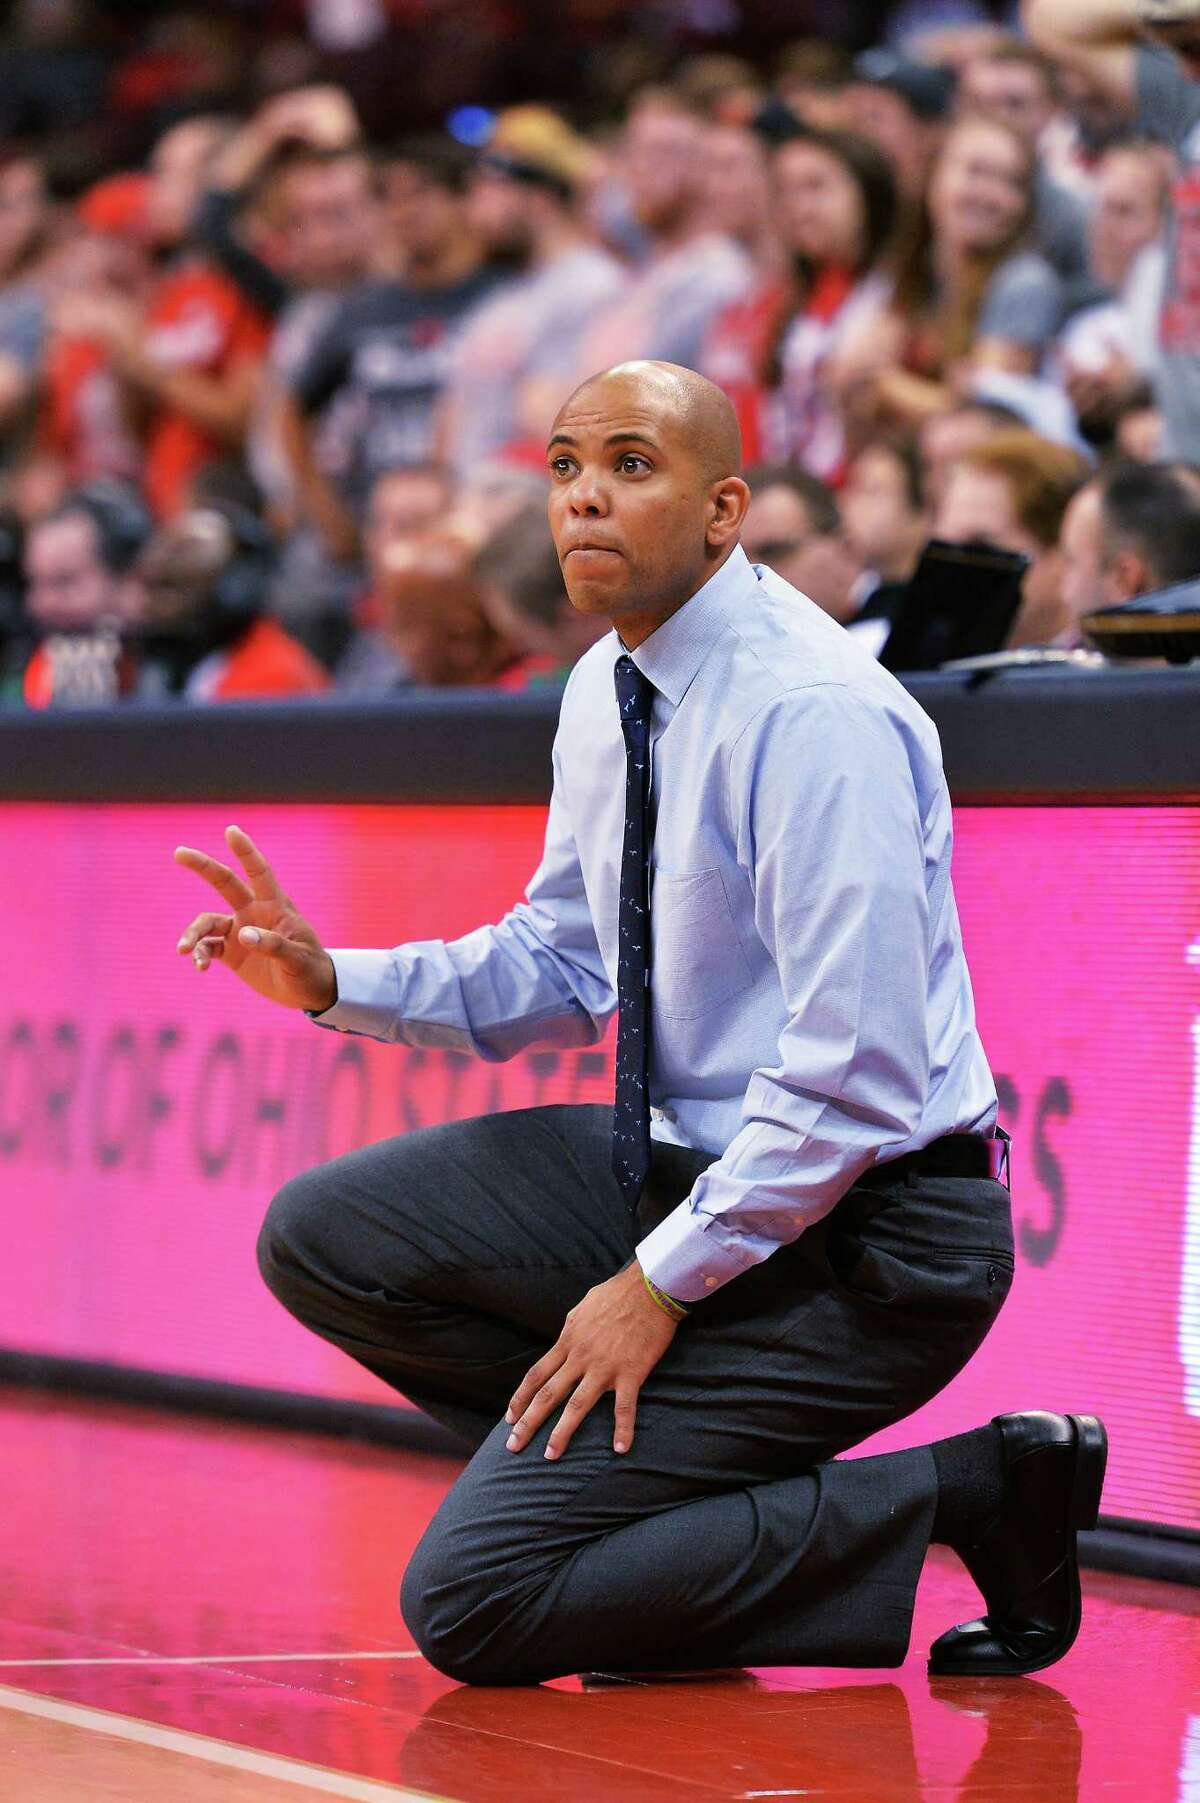 COLUMBUS, OH - NOVEMBER 15: Head Coach Jamion Christian of the Mount St. Mary's Mountaineers watches his team play against the Ohio State Buckeyes in the first half on November 15, 2015 at Value City Arena in Columbus, Ohio. Ohio State defeated Mount St. Mary's 76-54. (Photo by Jamie Sabau/Getty Images) ORG XMIT: 588957669